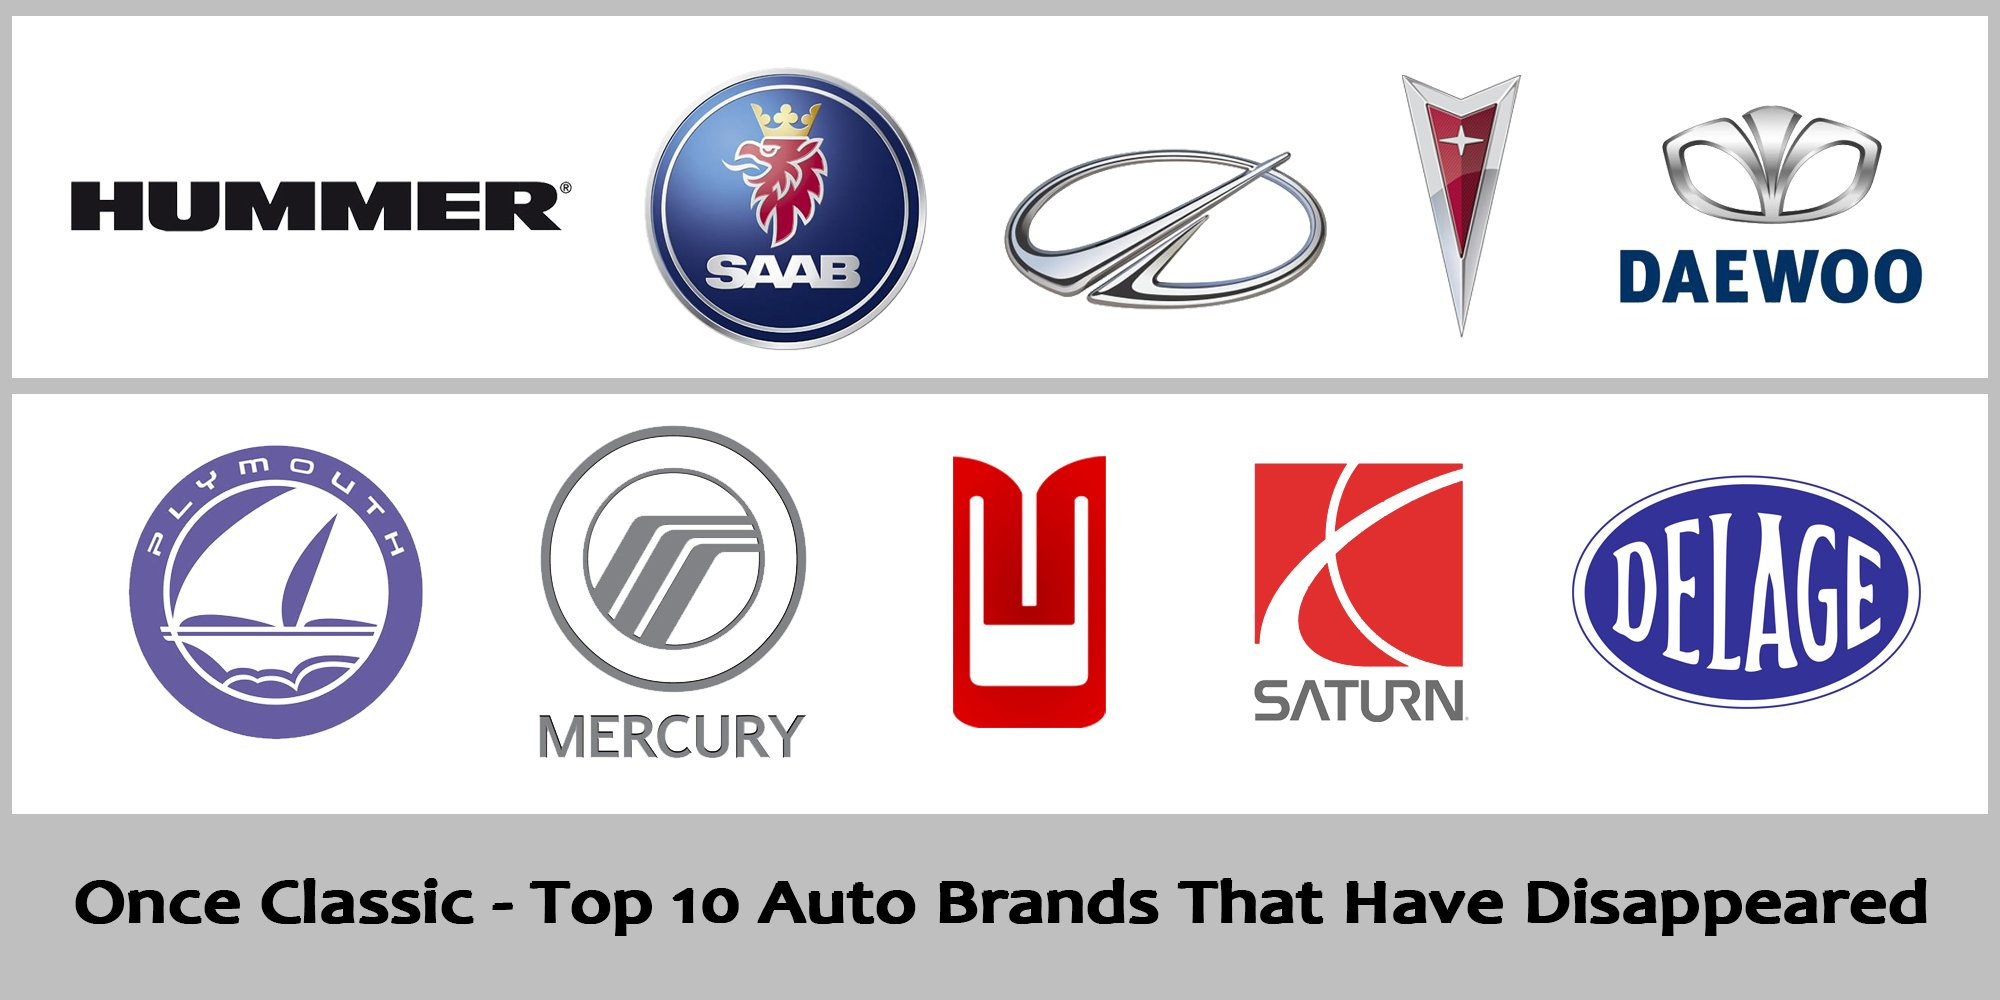 Once Classic - Top 10 Auto Brands That Have Disappeared (Part Two)